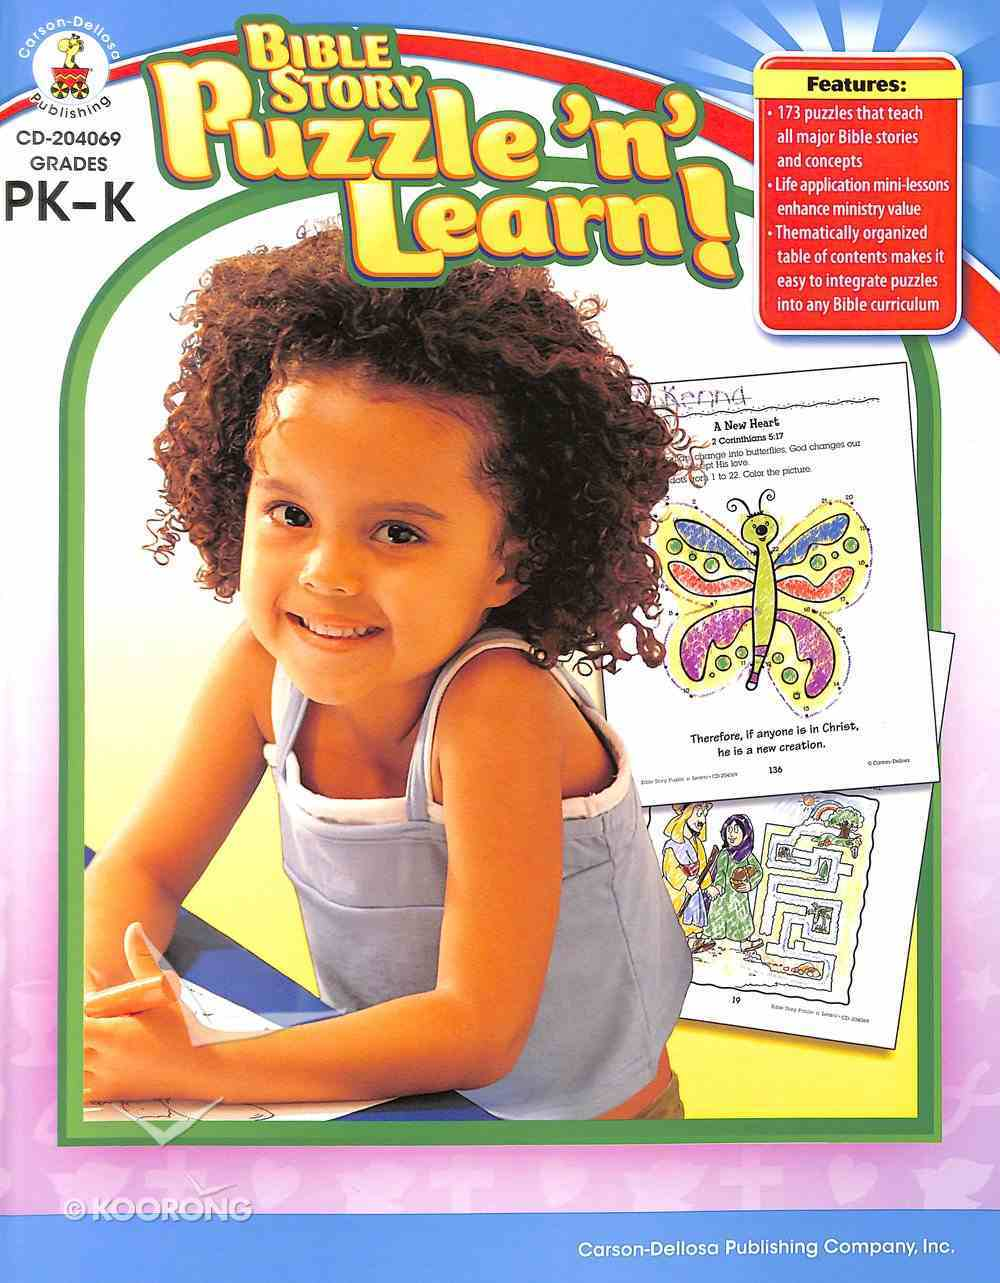 Bible Story Puzzle 'N' Learn!: Grades Pk-K Paperback